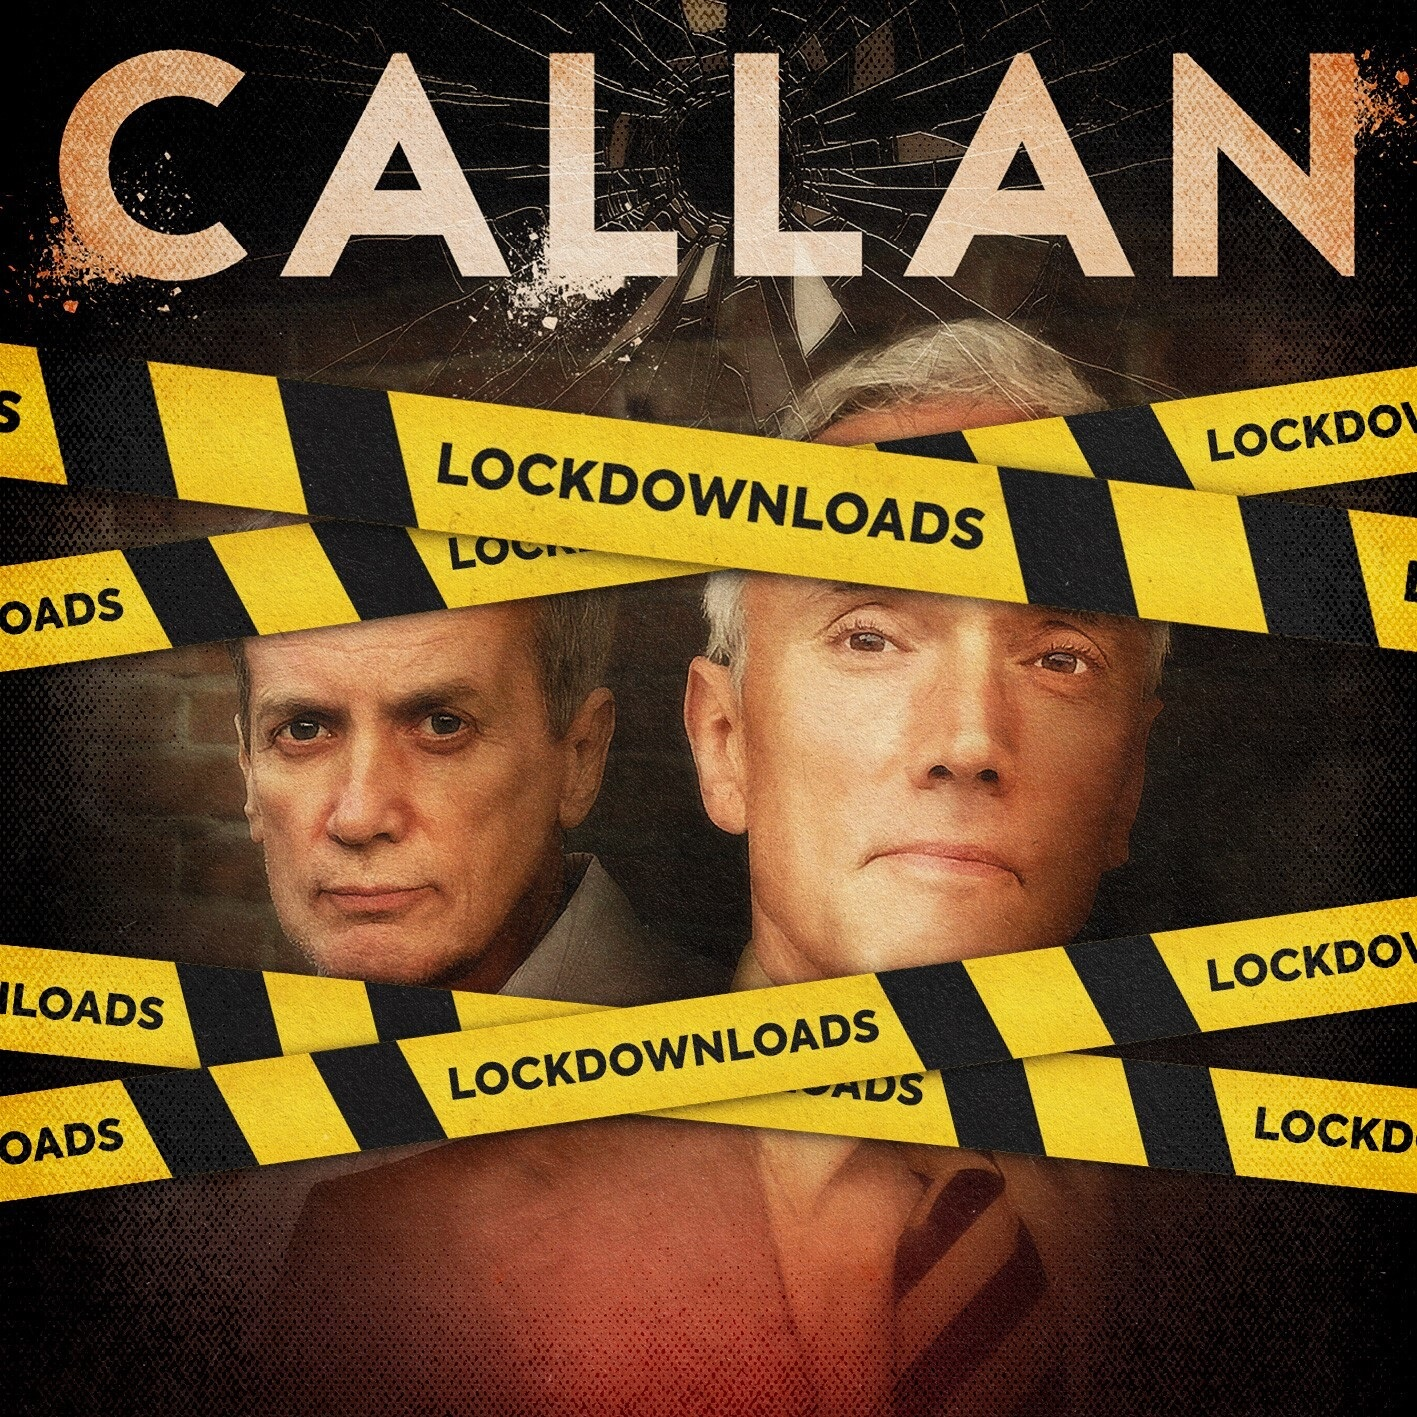 Free Download: Callan, Starring Ben Miles and Frank Skinner, from Big Finish